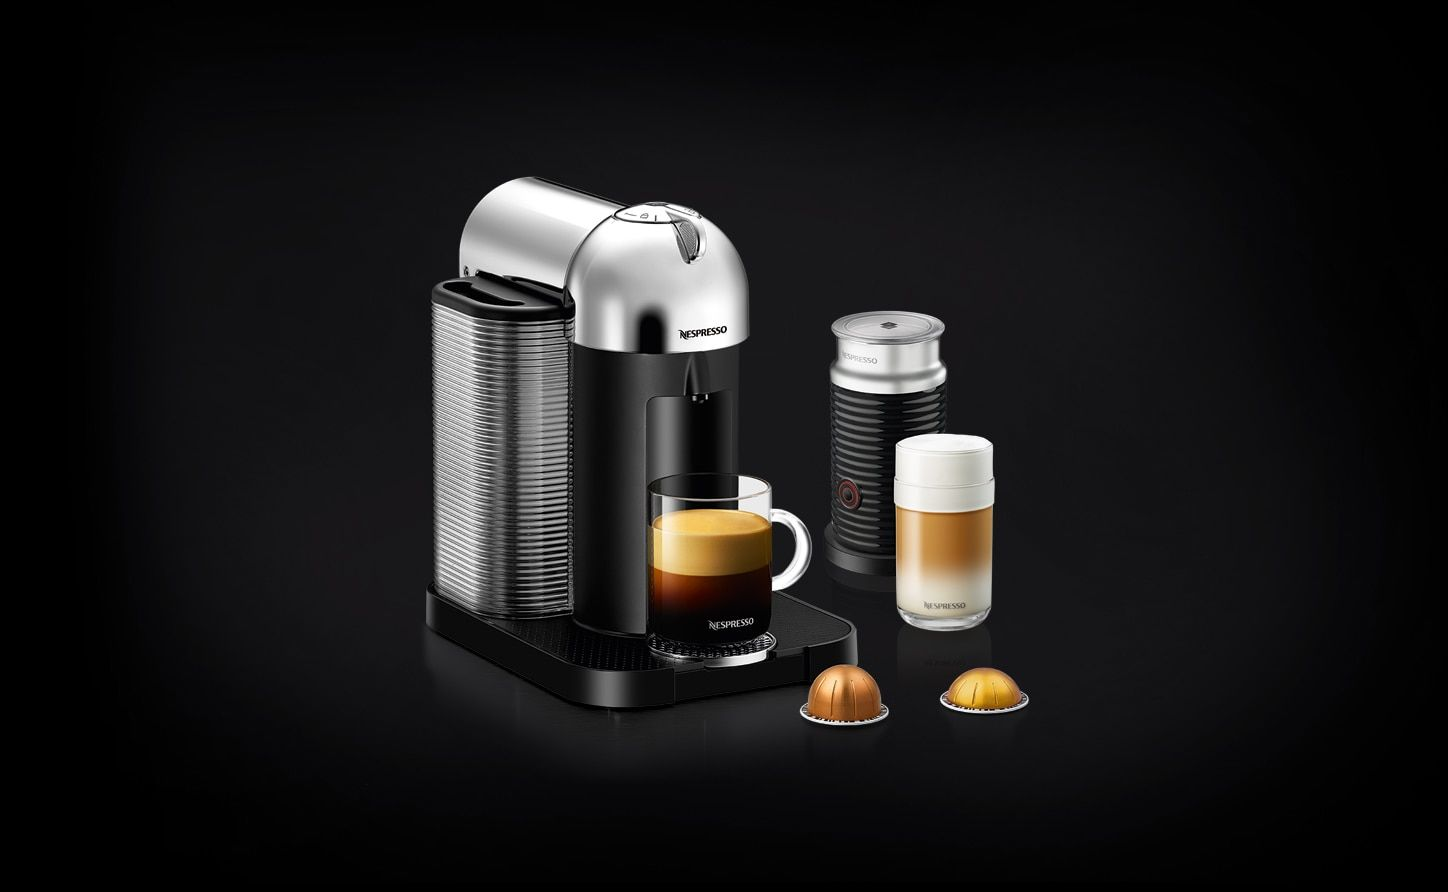 With the Vertuo Chrome Bundle, enjoy a nice coffee or make